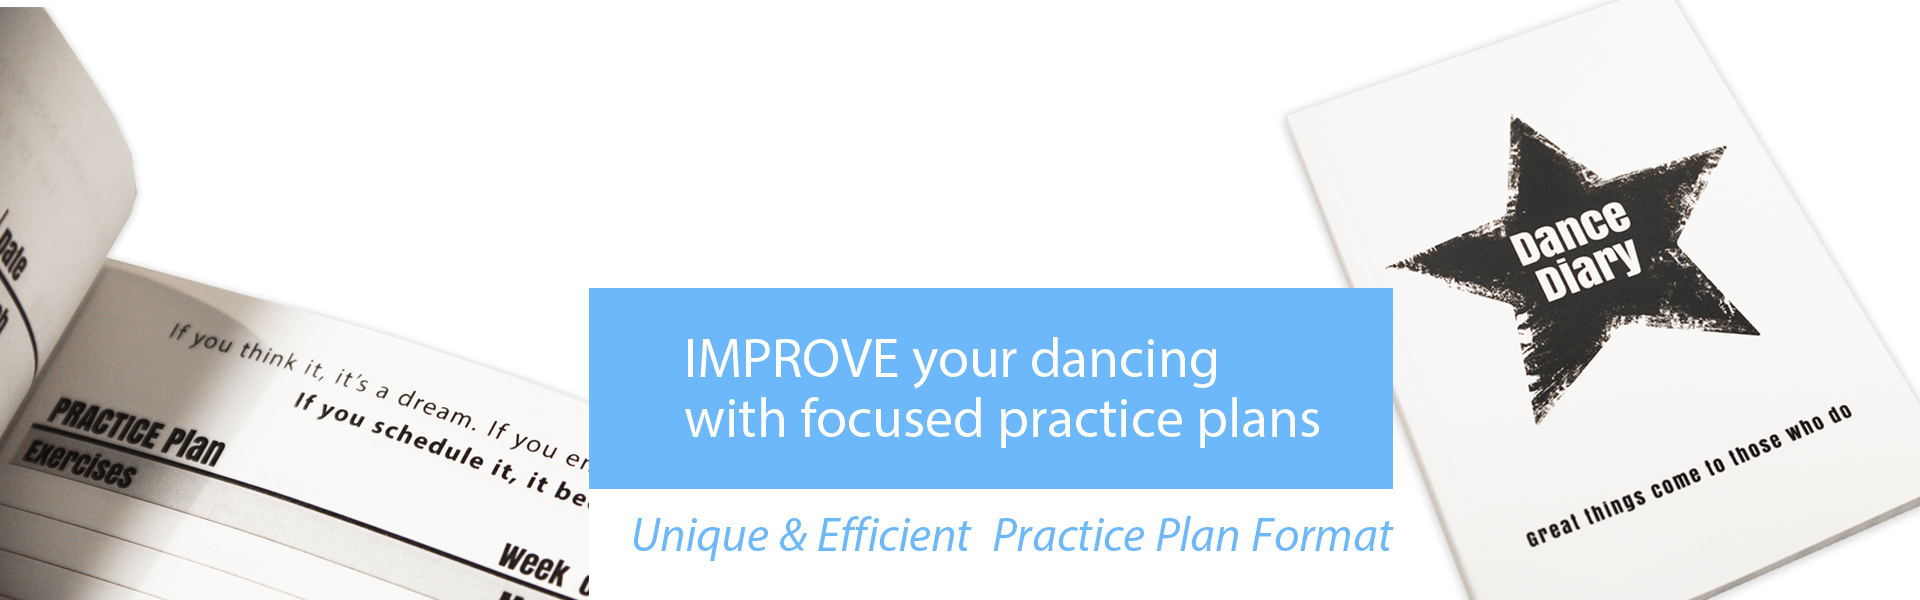 Organize Your Dance Practices with the Dance Diary by Dance Insanity